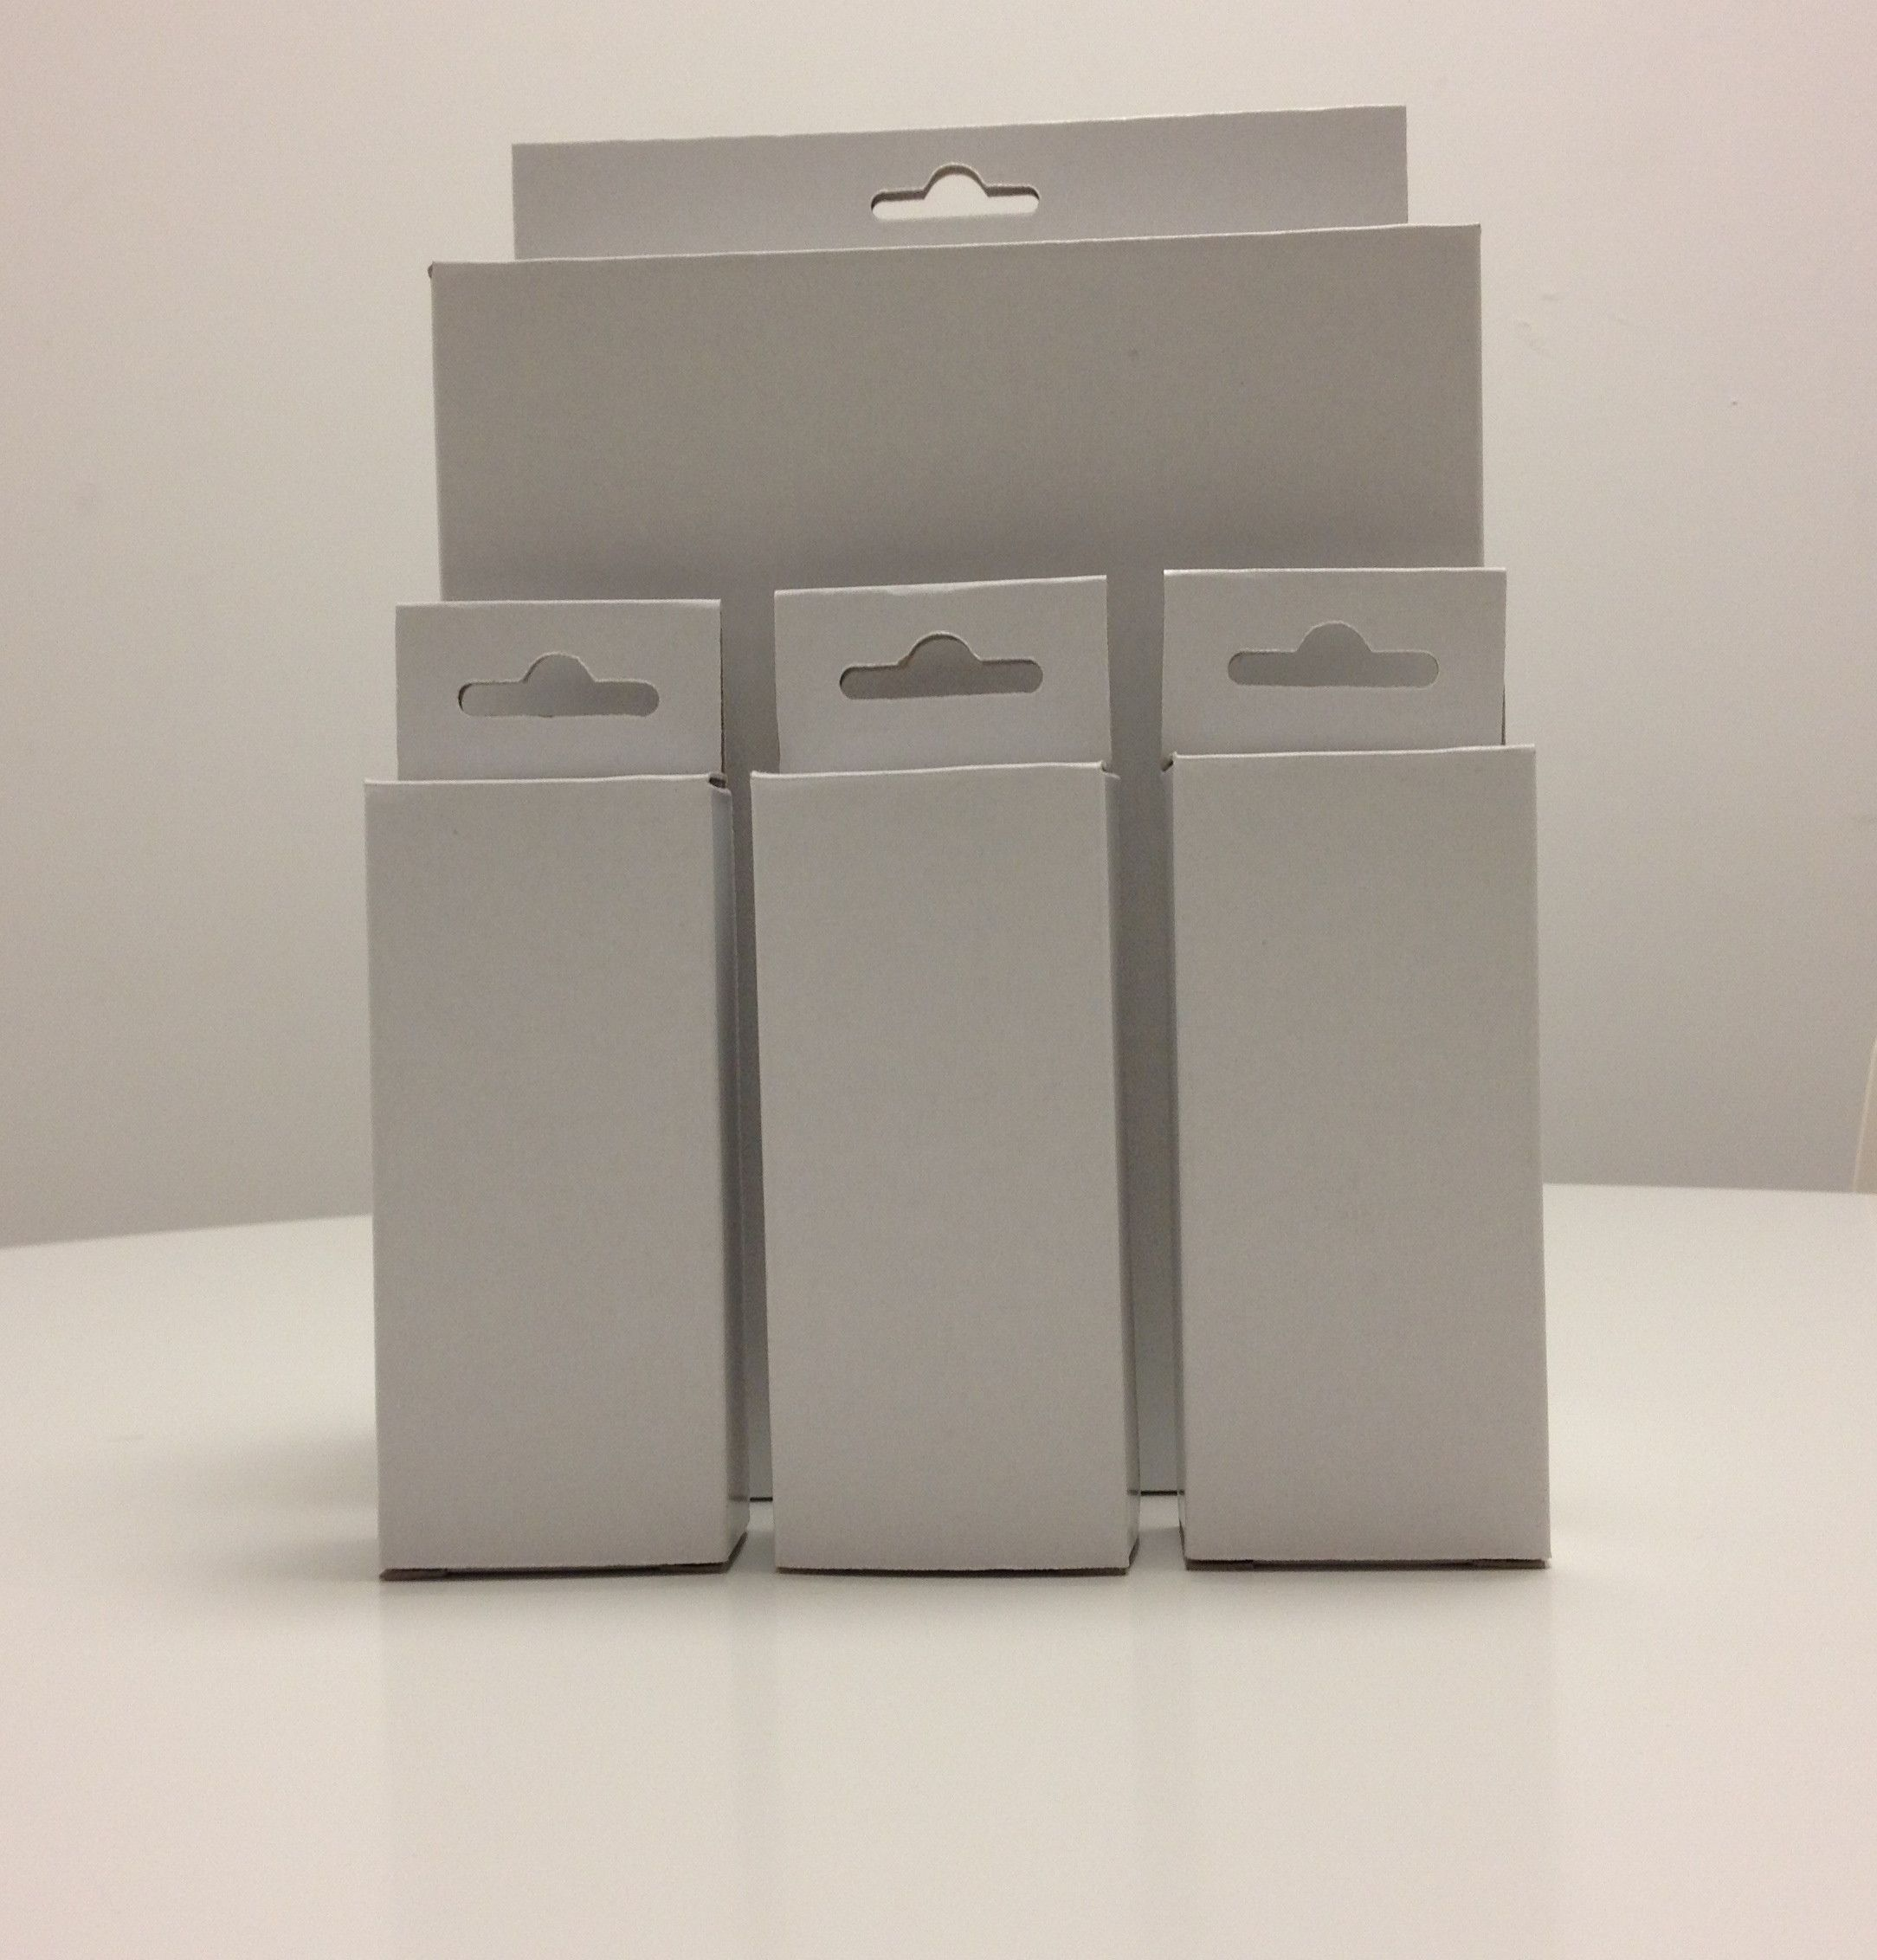 Design packaging packaging specialist packaging - Envypak Is Retail And Packaging Specialist Company We Offers An Expanded Array Of Boxes